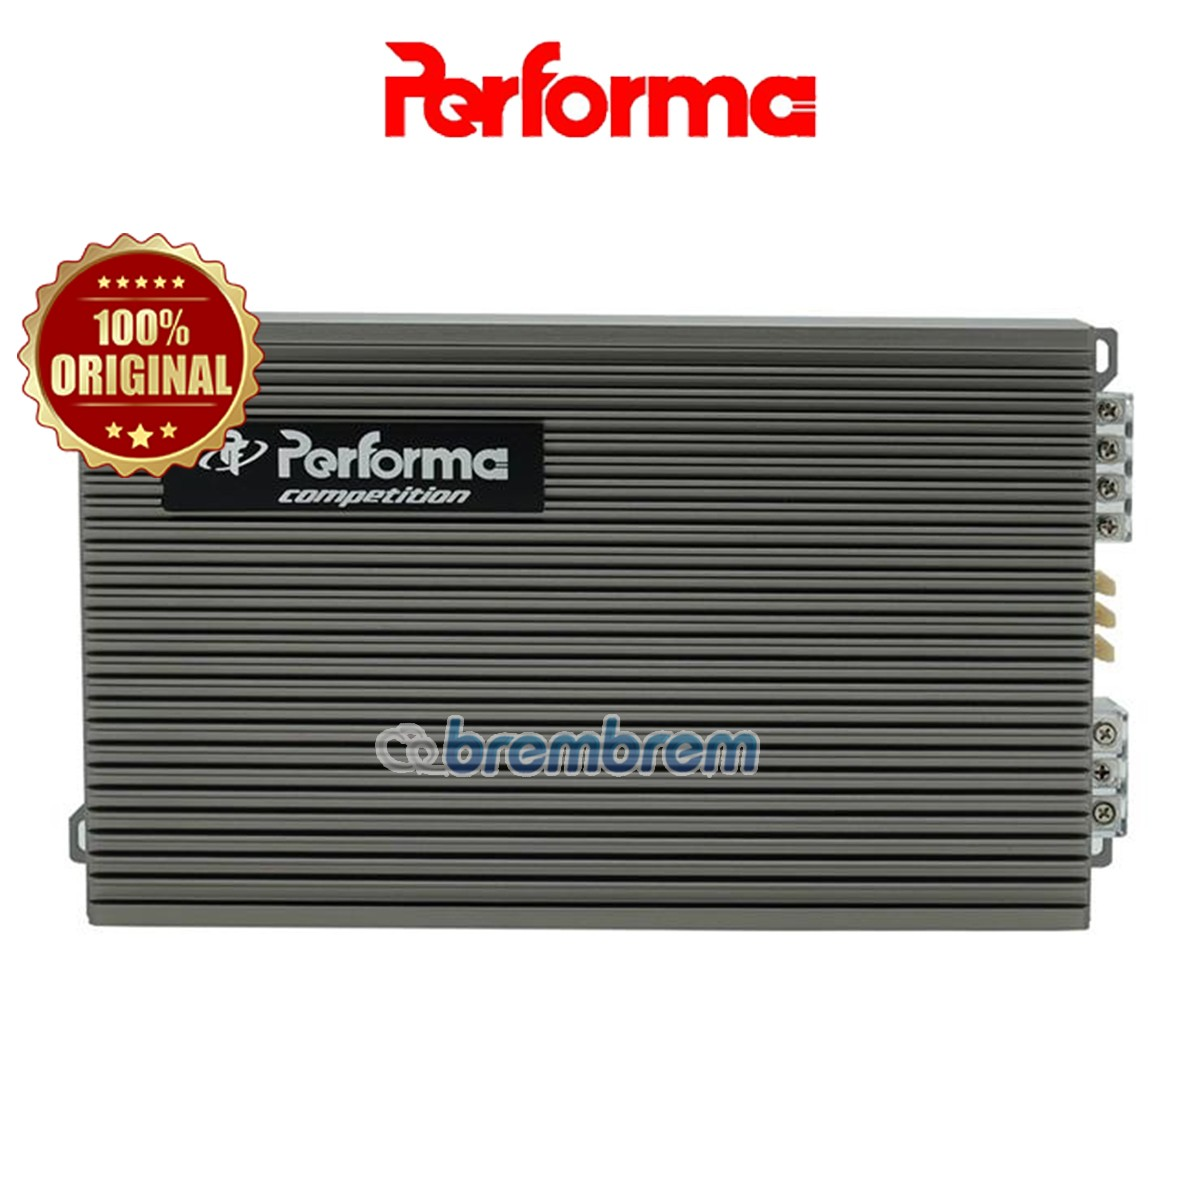 PERFORMA PCM-1800D - POWER MONOBLOCK (PREORDER)